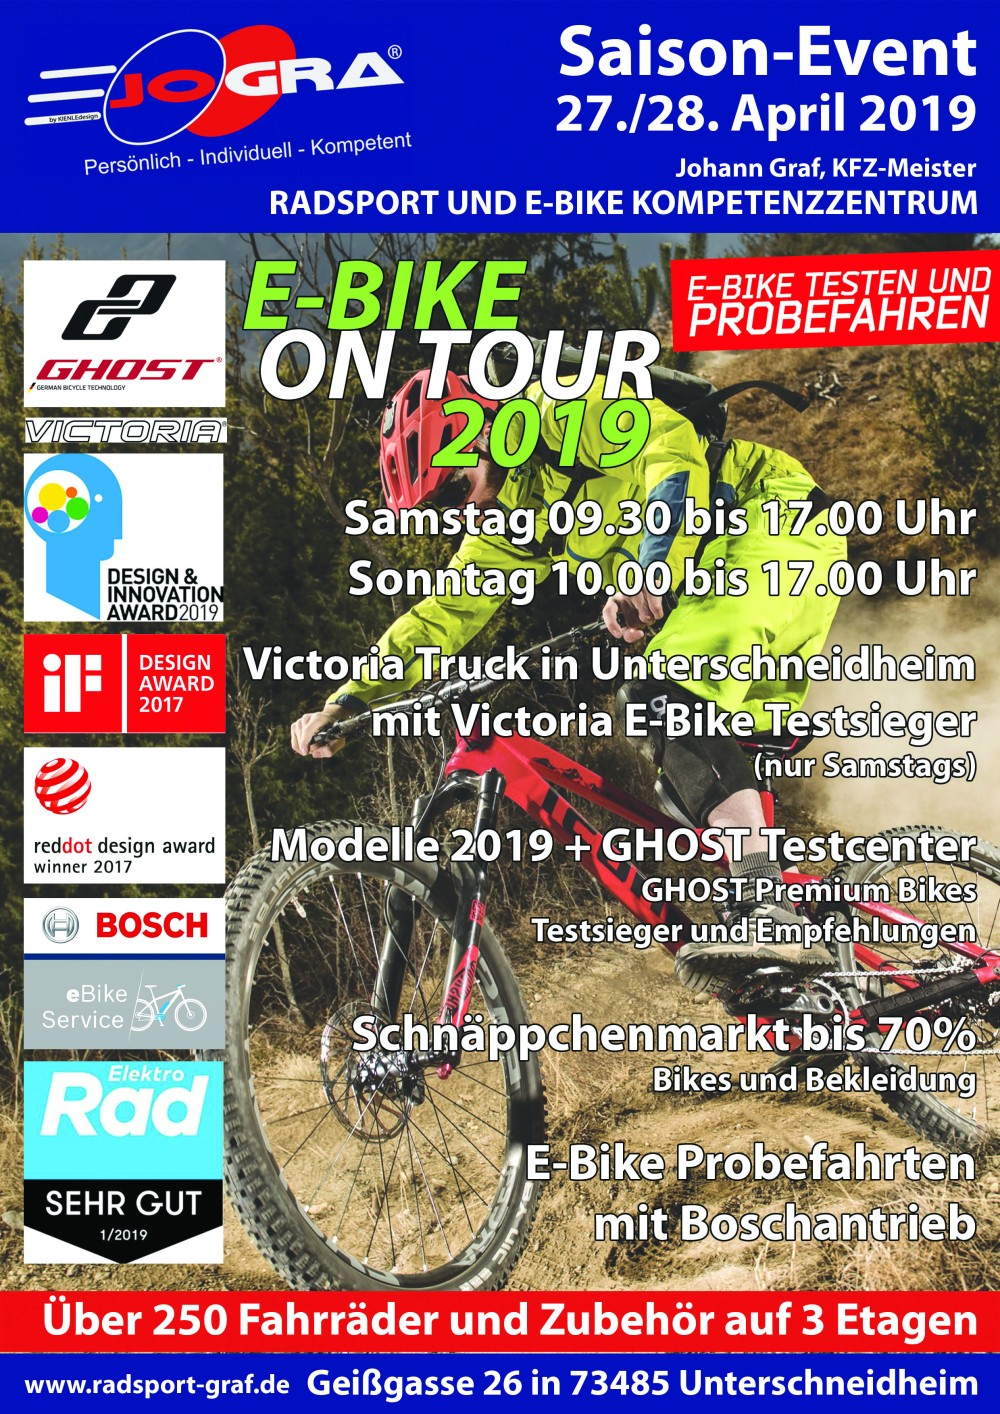 JOGRA Unterschneidheim - SaisonEvent-27und28April2019(final-20190417)